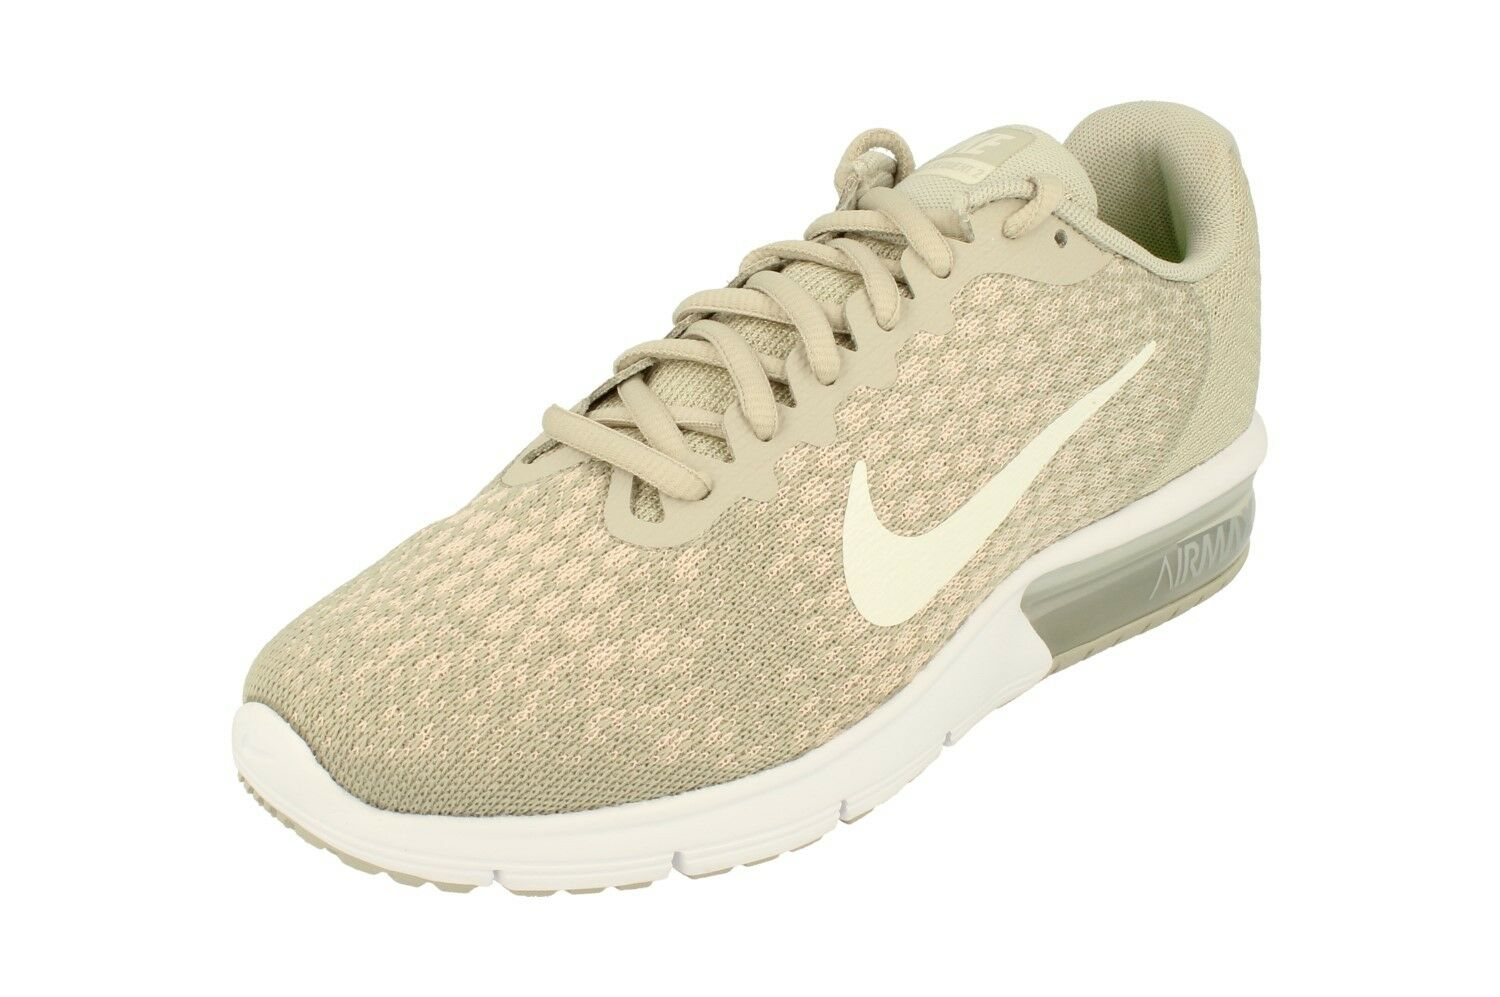 Nike Womens Air Max Sequent 2 Running Trainers Trainers Running 852465 Sneakers Shoes 011 1021f1